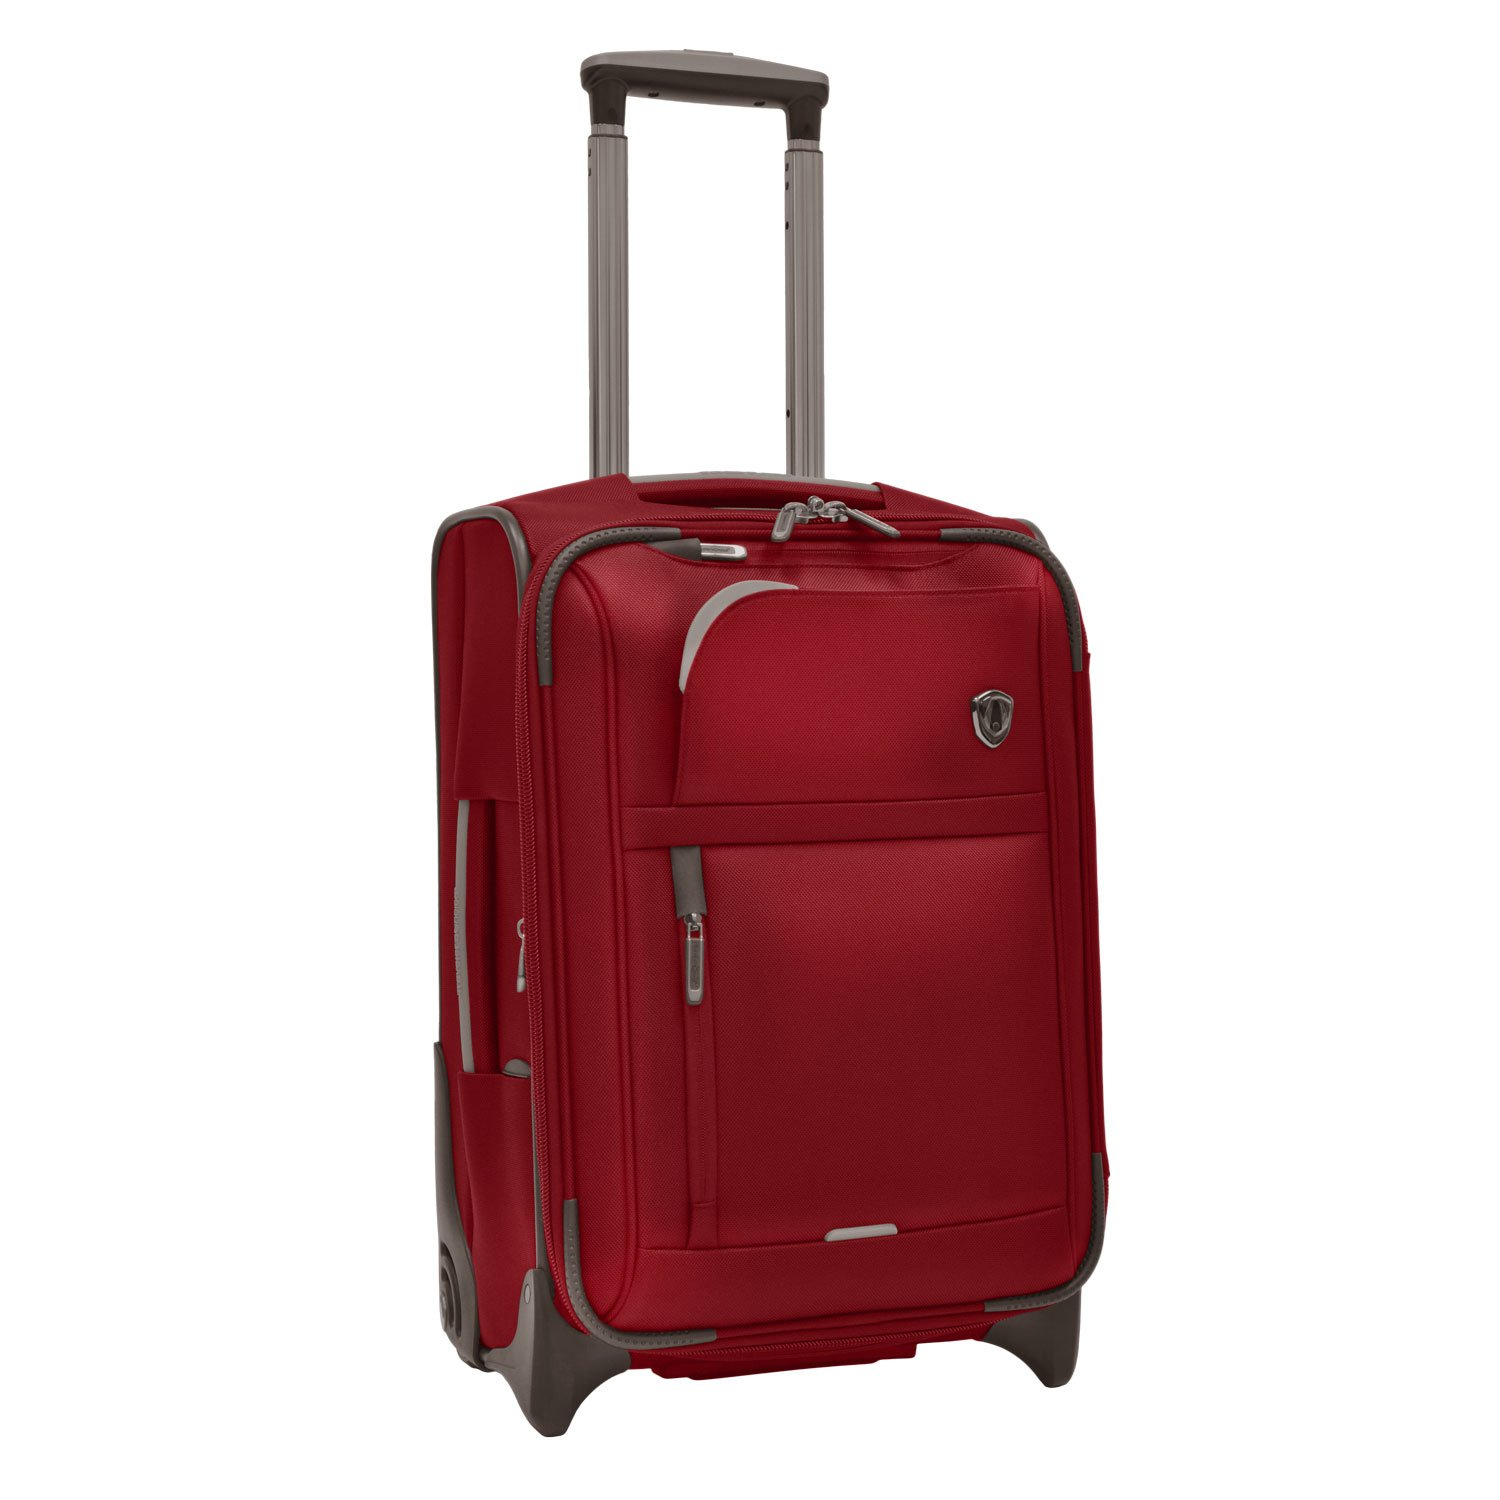 Traveler's Choice  Birmingham Lightweight Expandable Rugged Rollaboard Rolling Luggage - Red (21-Inch)